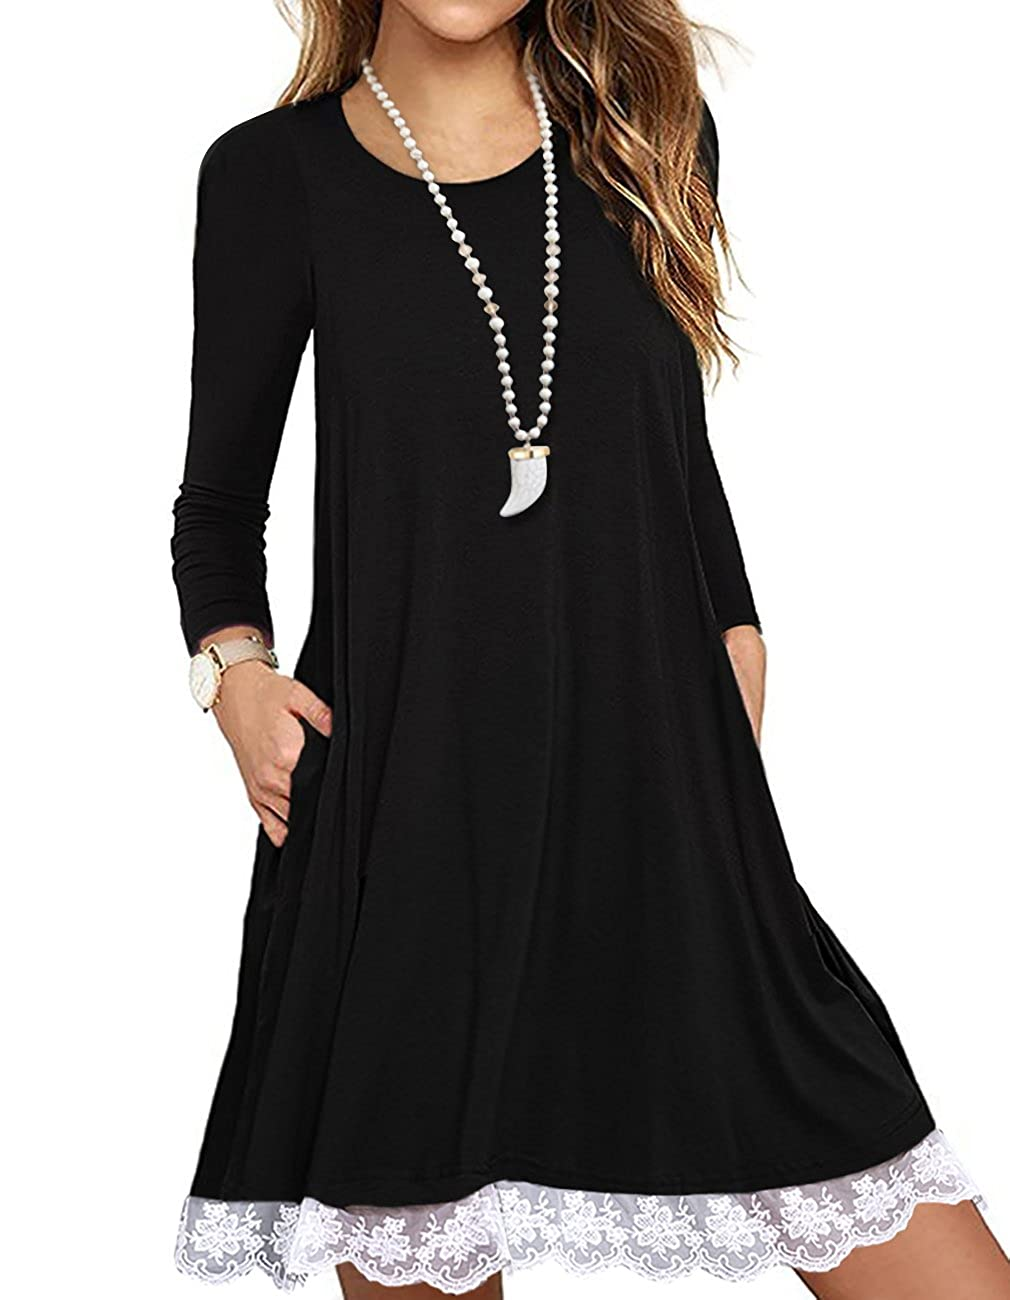 Sanifer Womens Long Sleeve Cotton Lace T Shirt Dress With Pockets